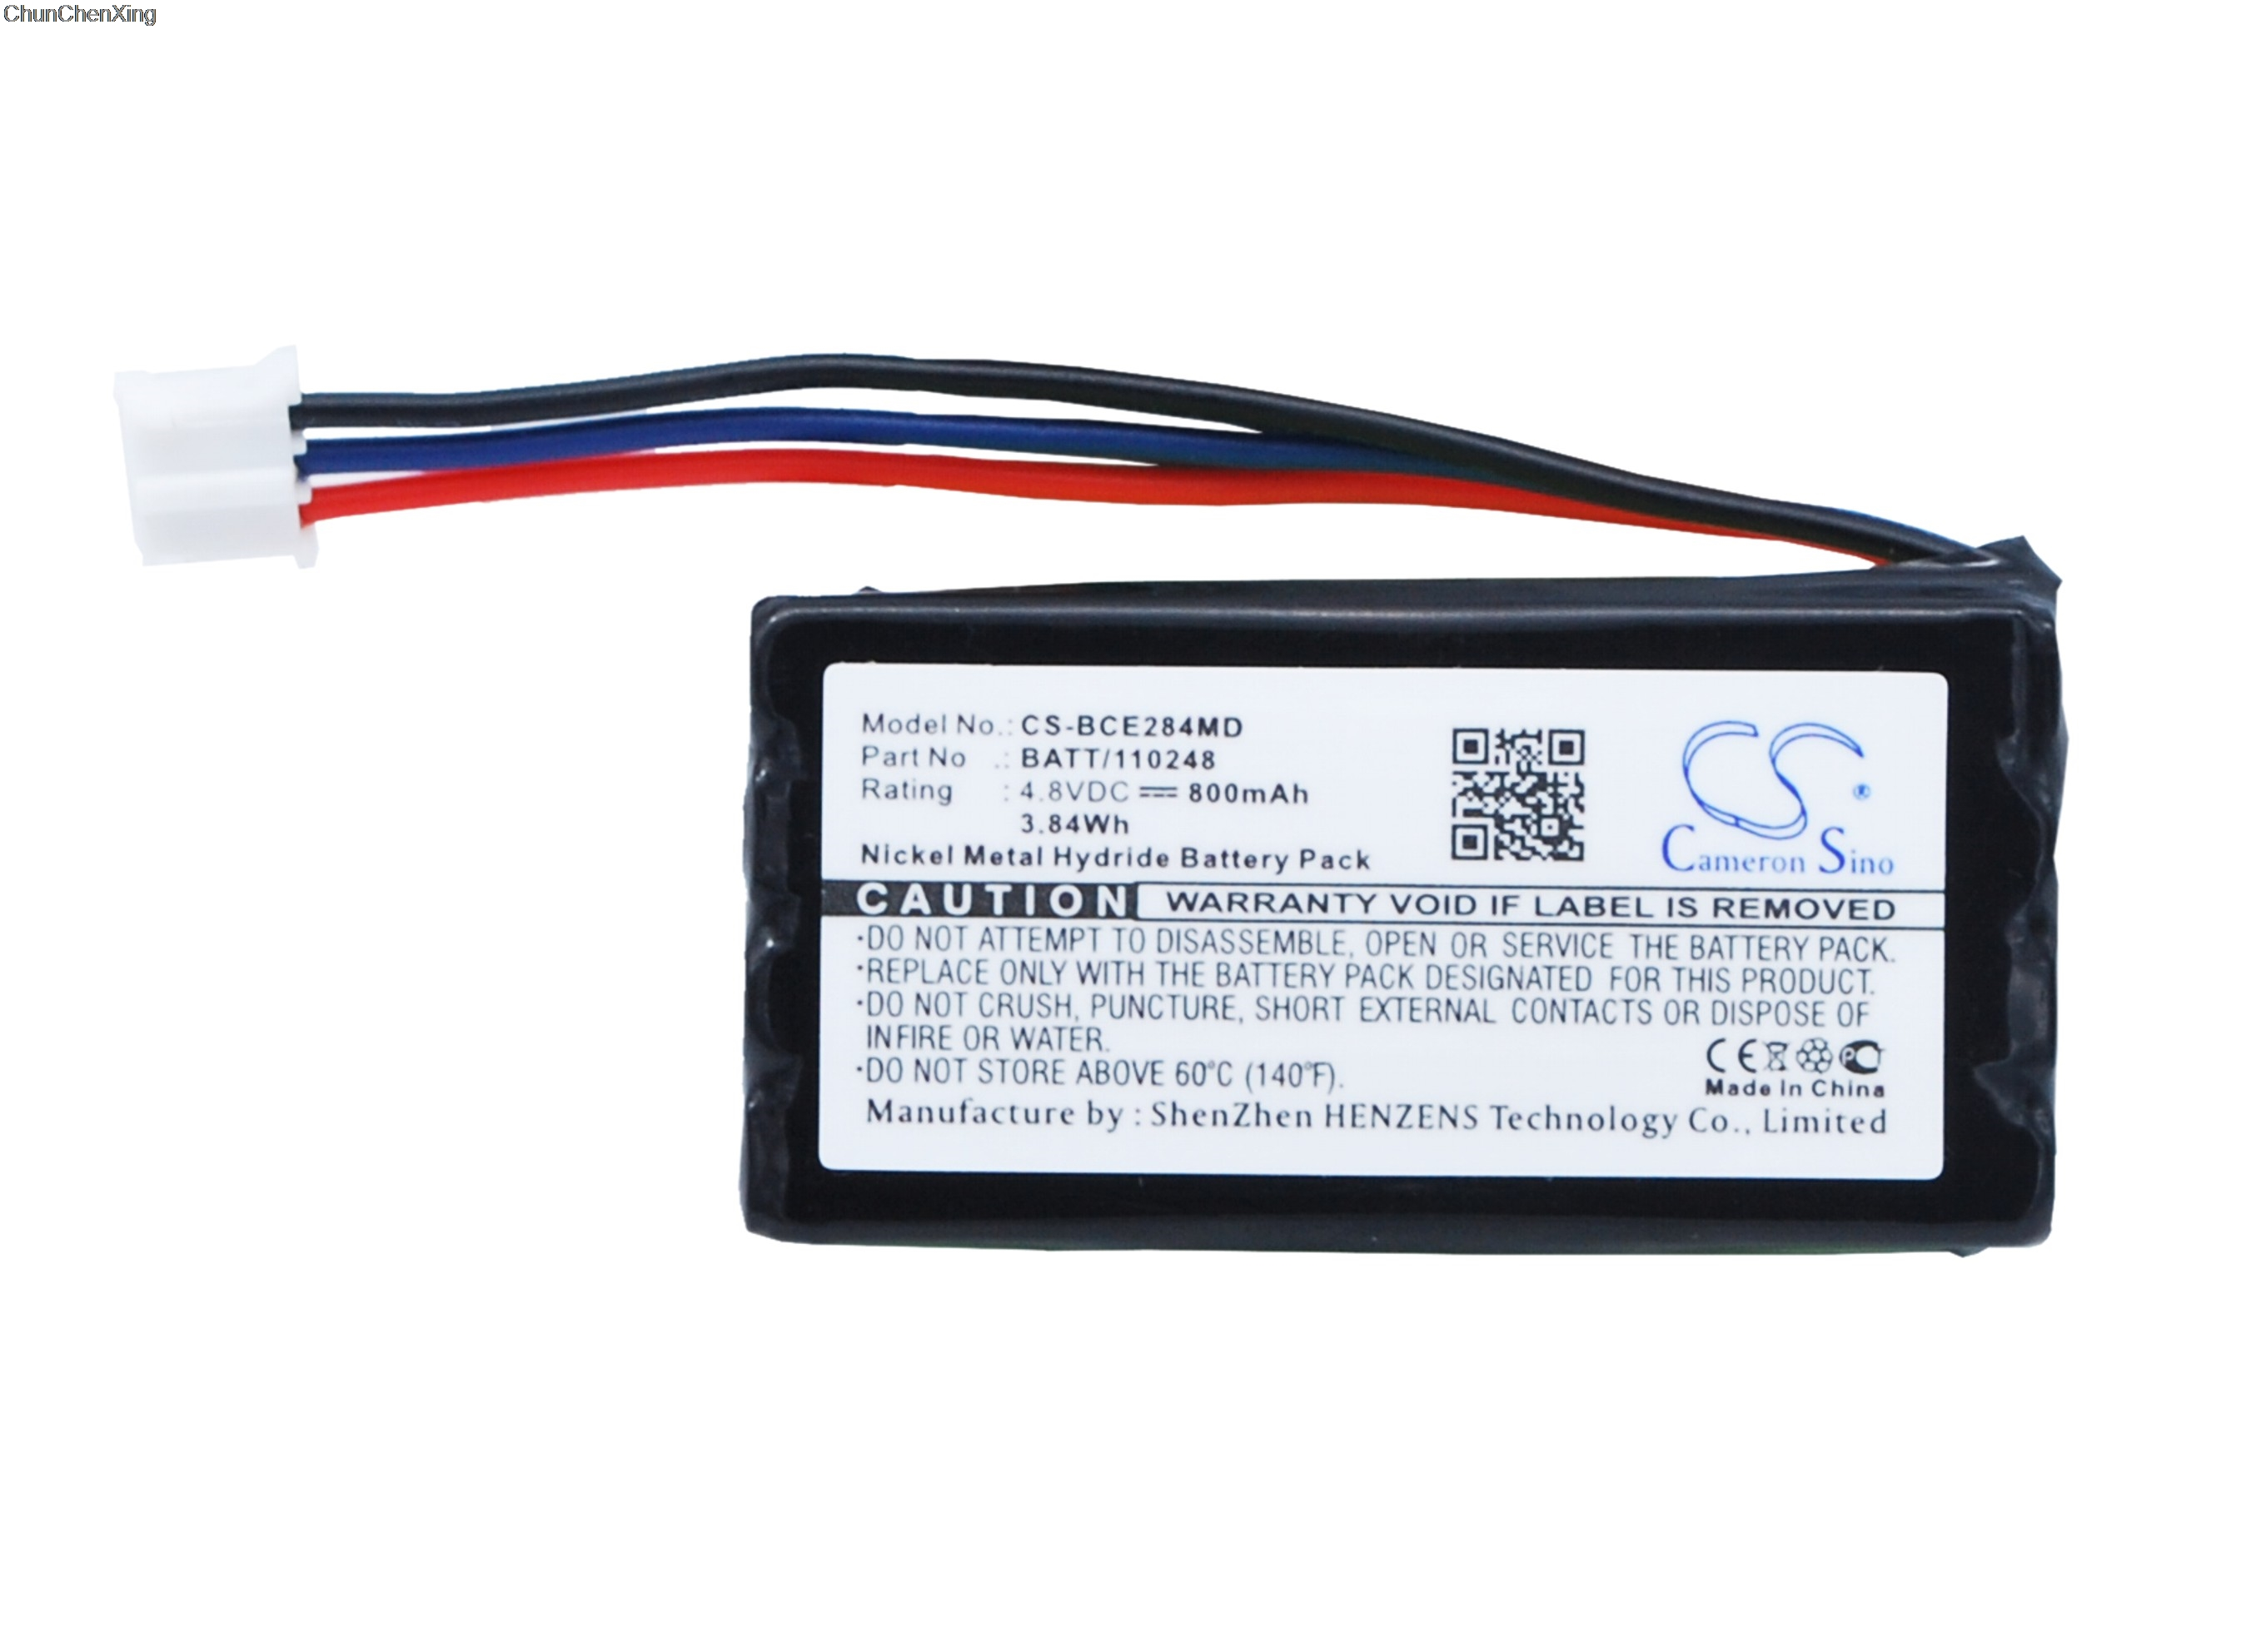 Cameron Sino 800mAh Battery 120284, BATT/110248 for Biocam Dermogenius Basic